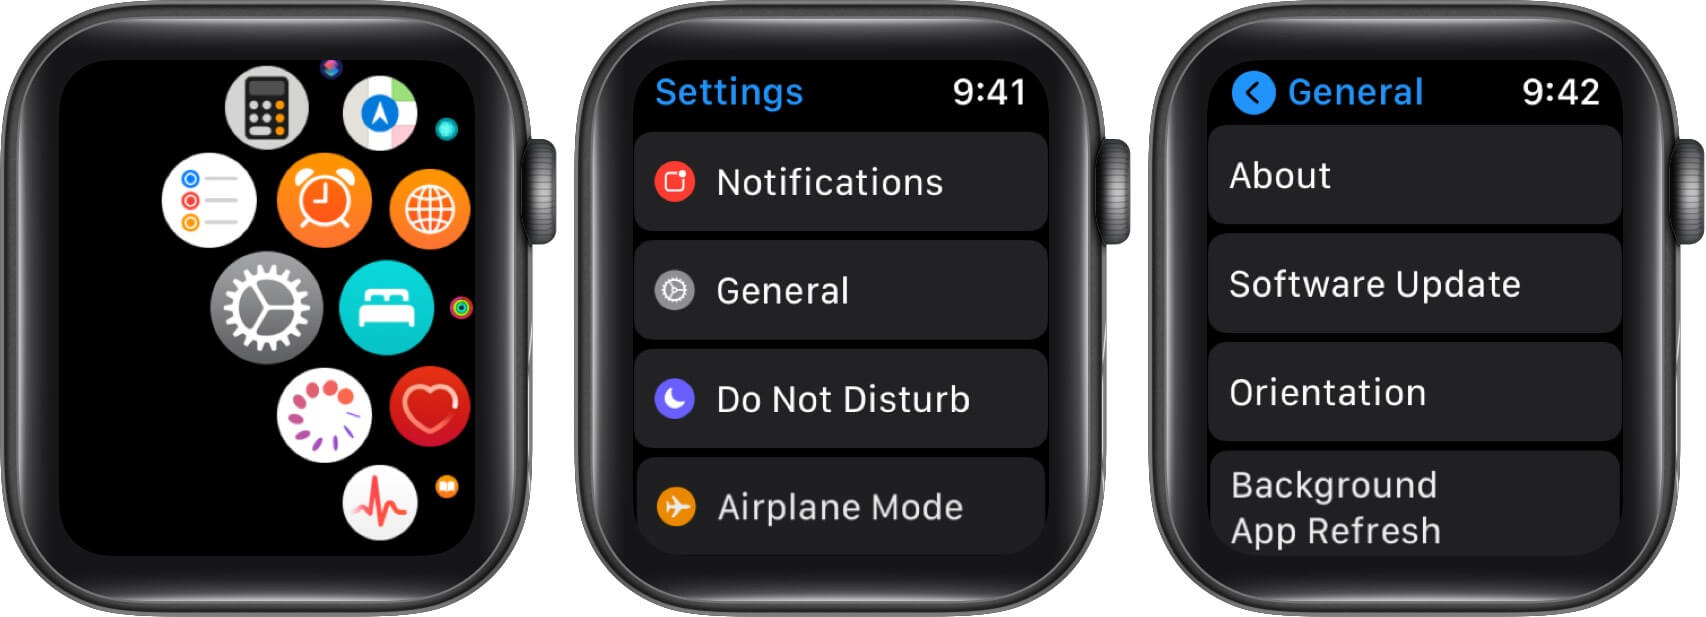 Open Settings Tap on General and Then Tap on Update on Apple Watch